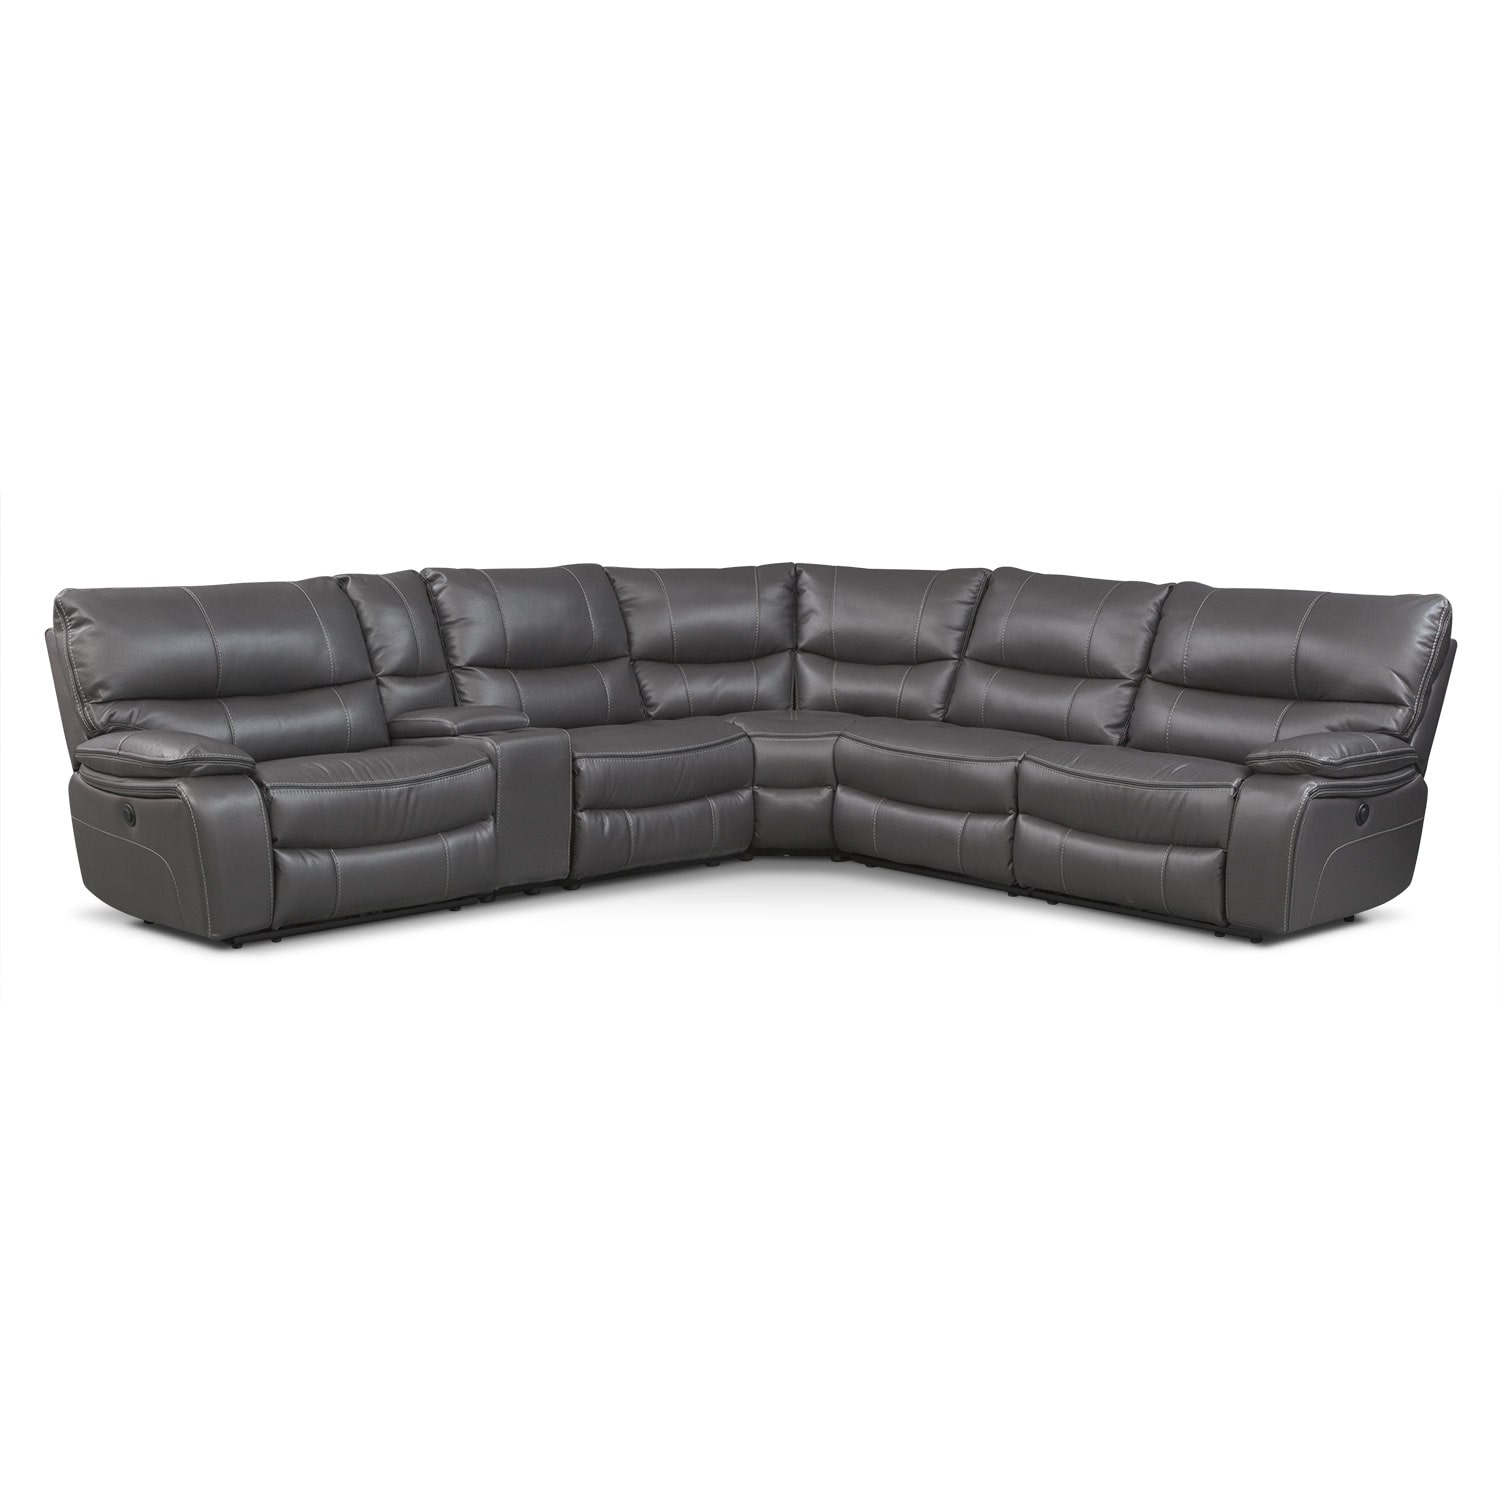 Living Room Furniture - Orlando 6-Piece Power Reclining Sectional with 1 Stationary Chair